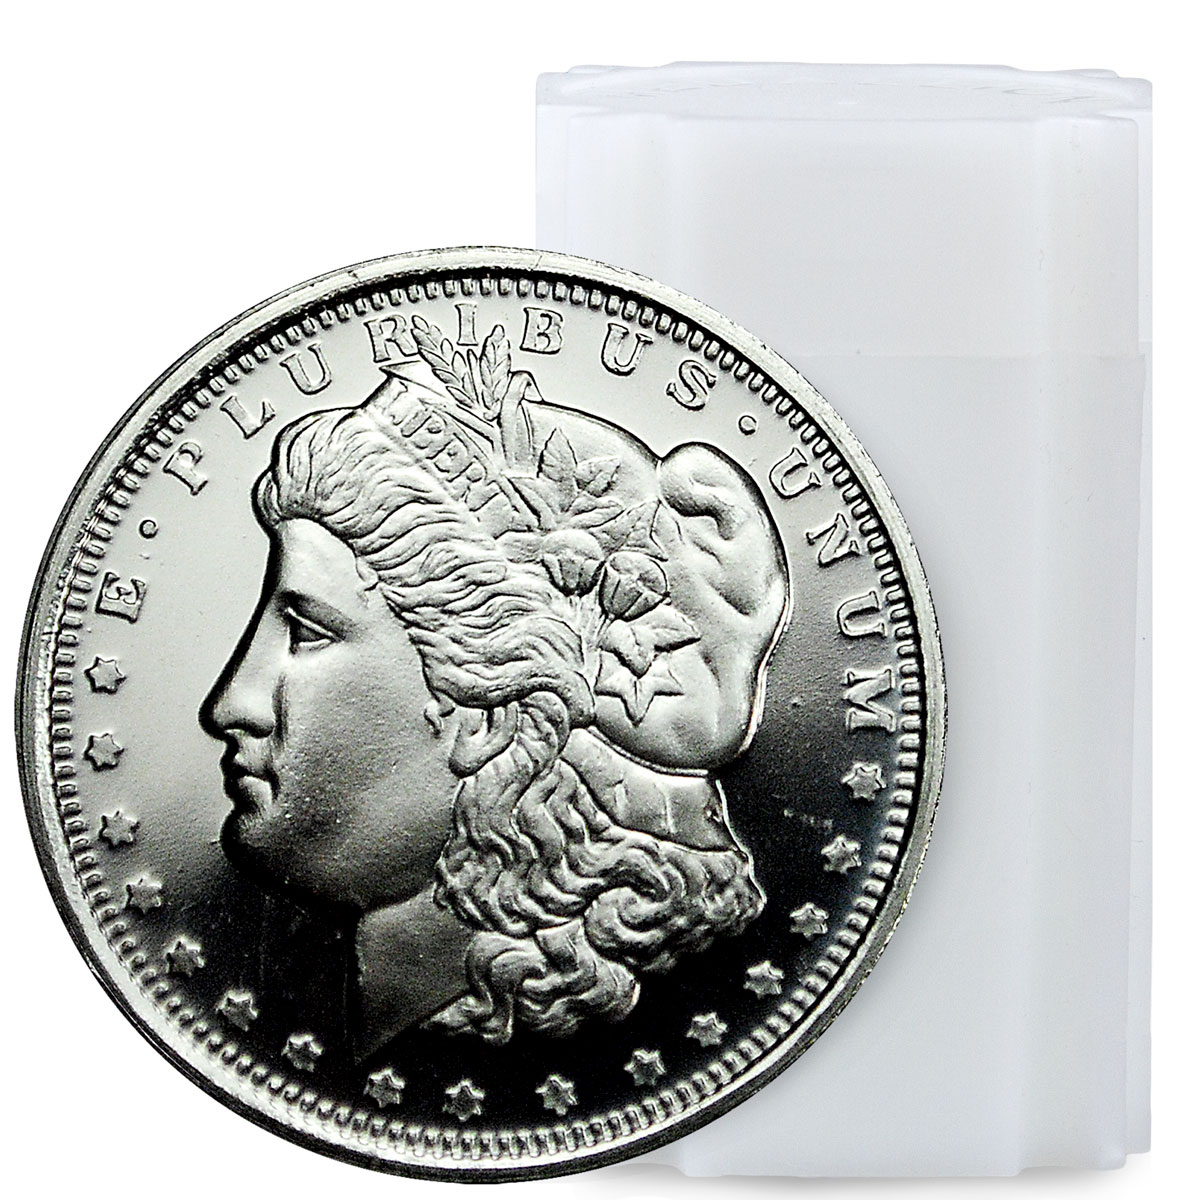 Roll of 20 - Highland Mint Morgan Dollar Design 1/2 oz Silver Round